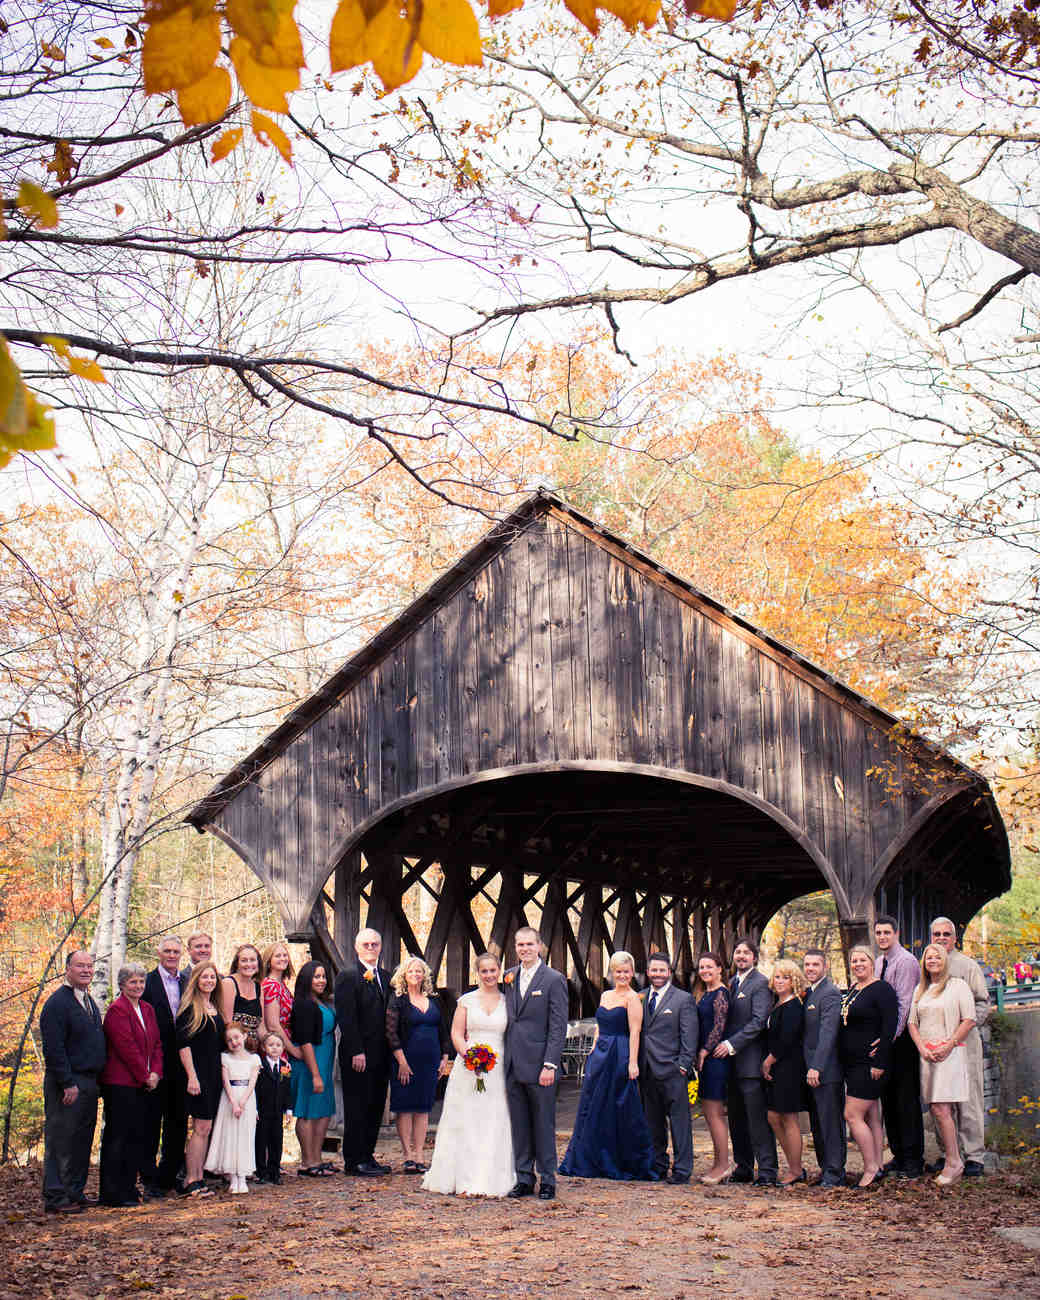 6 Covered Bridges That Make A Romantic Backdrop For A